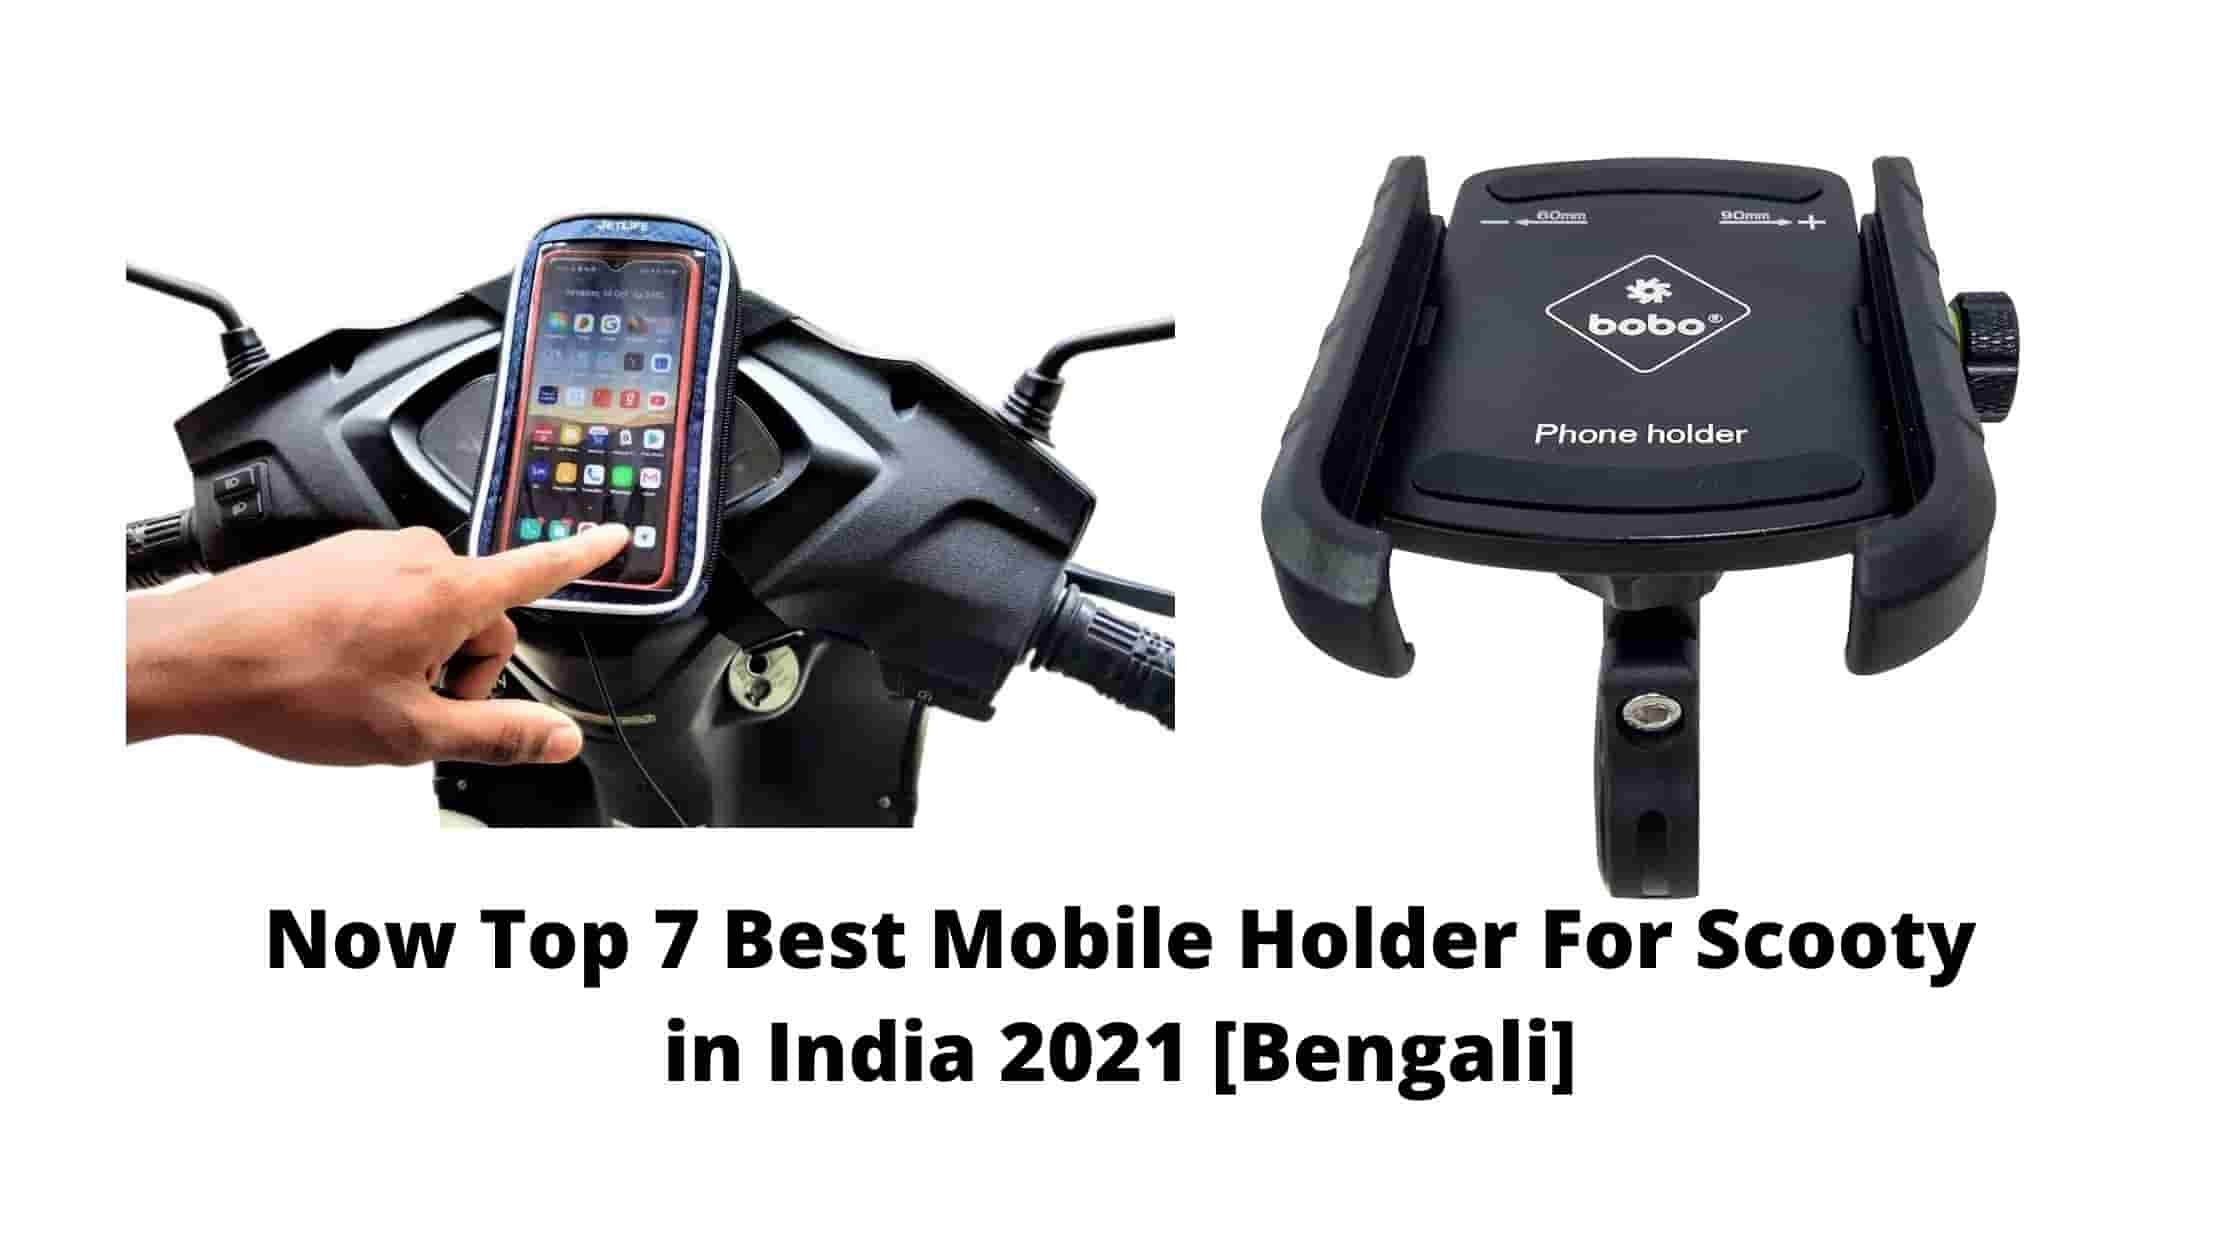 Now Top 7 Best Mobile Holder For Scooty in India 2021 [Bengali]